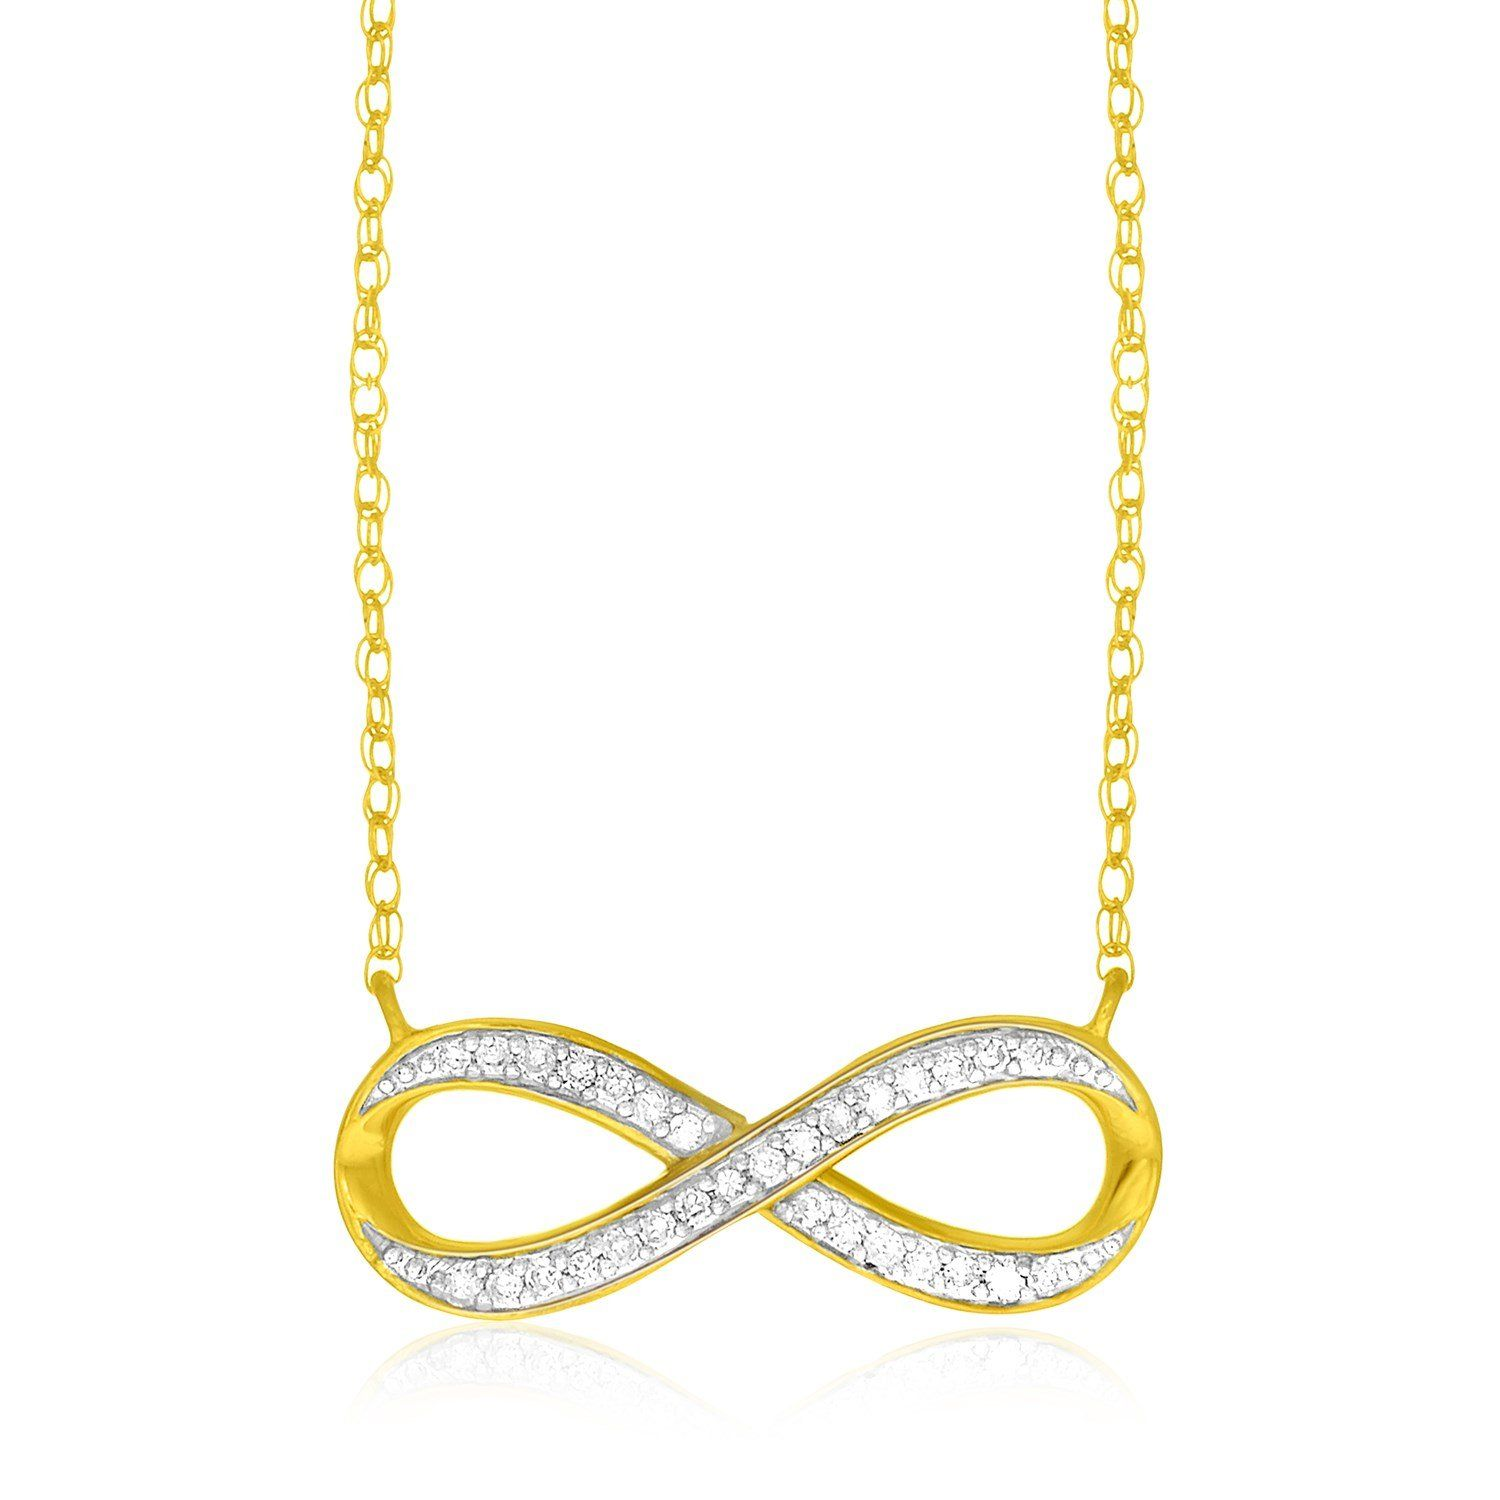 infinity pendant chains half small gold pave plated az sterling silver figure necklace cz bling jewelry pfs